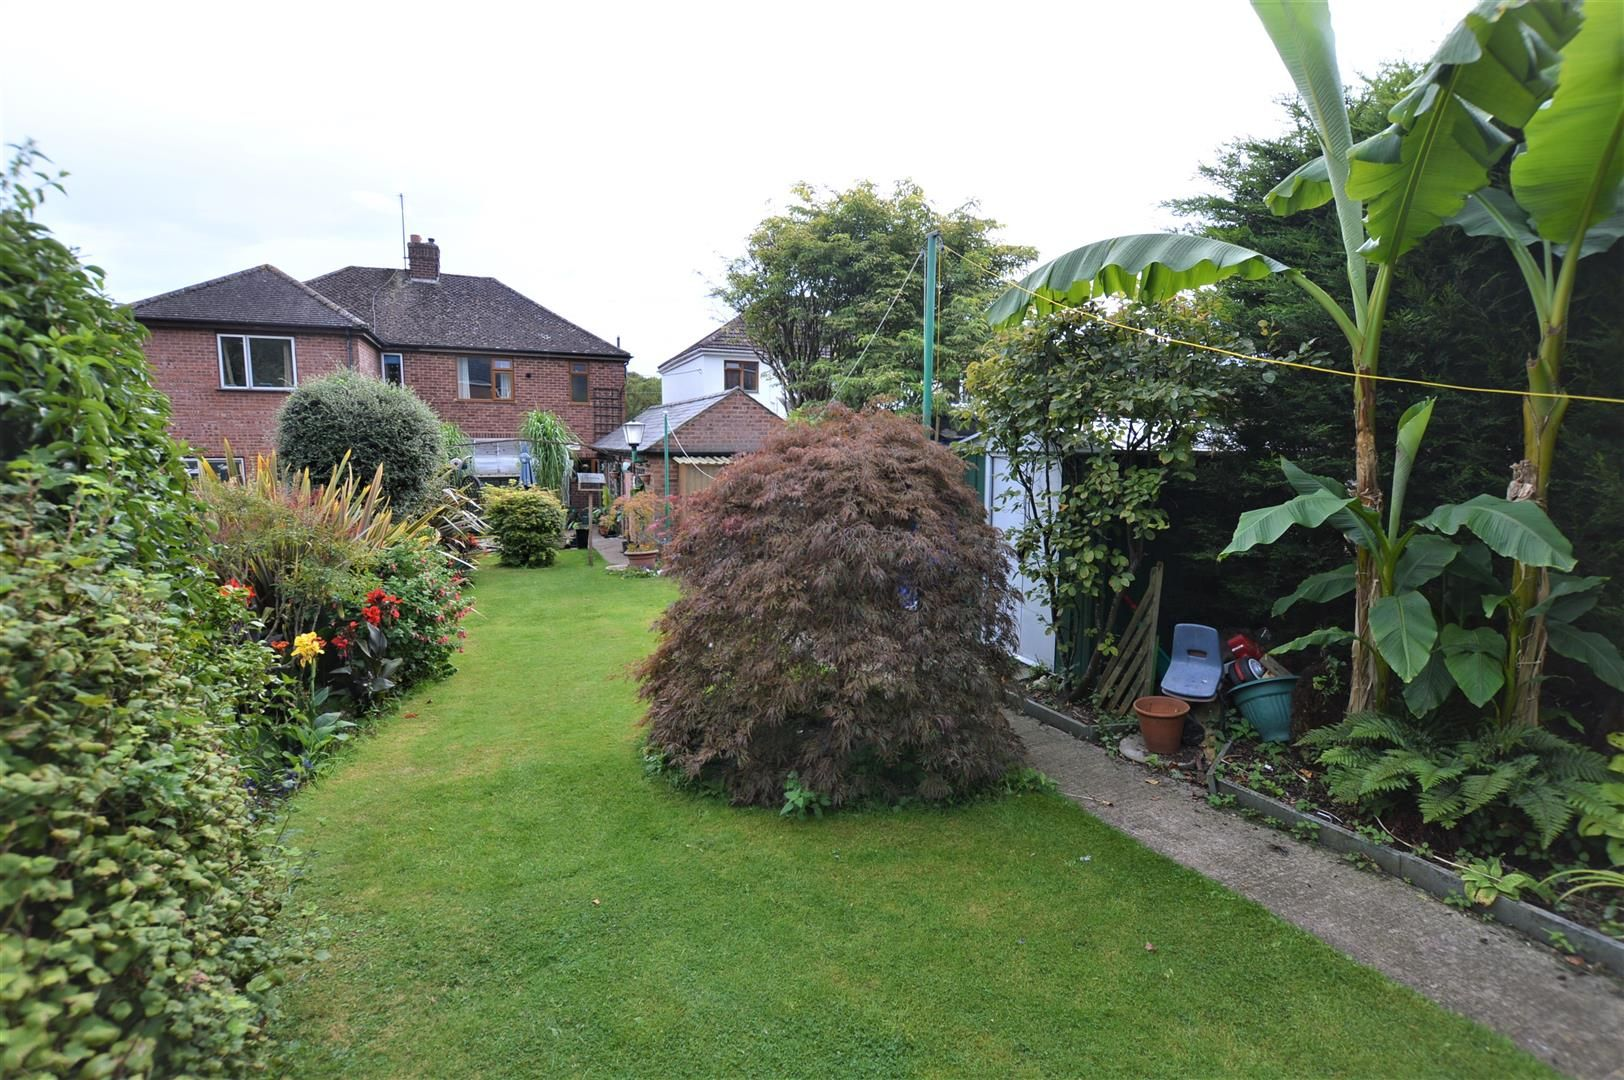 3 bed semi-detached for sale in Hereford  - Property Image 2